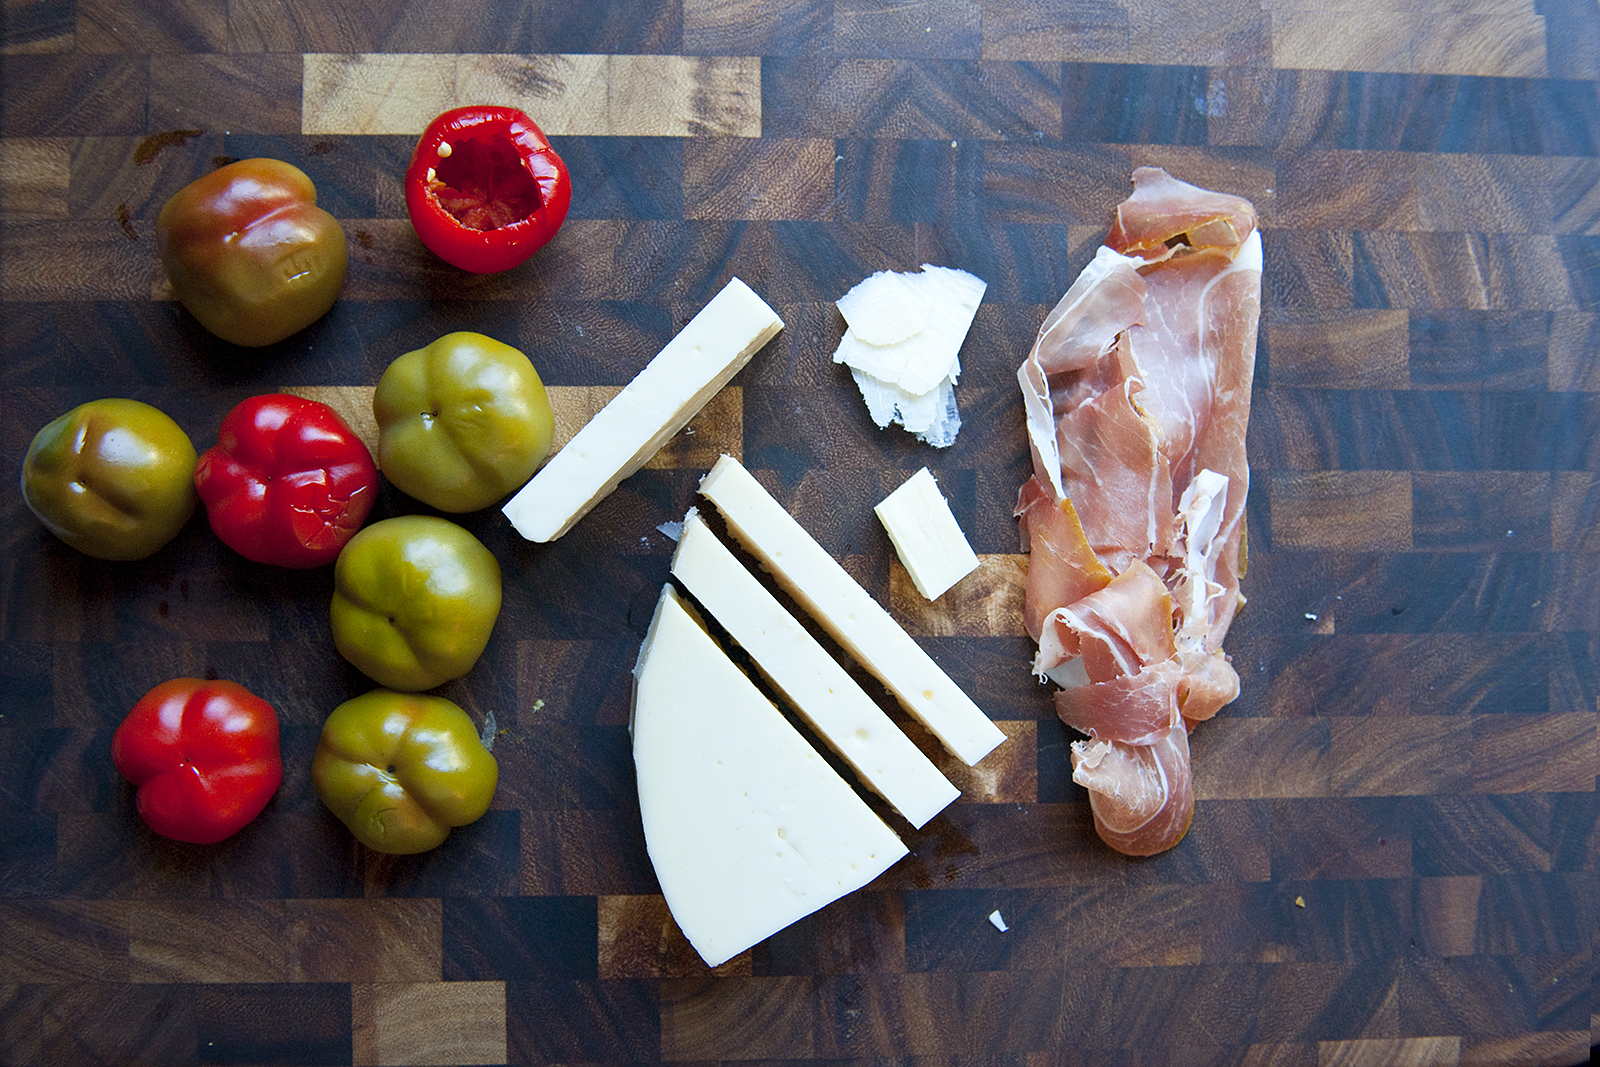 Cherry peppers, cheese, prosciutto cutting board